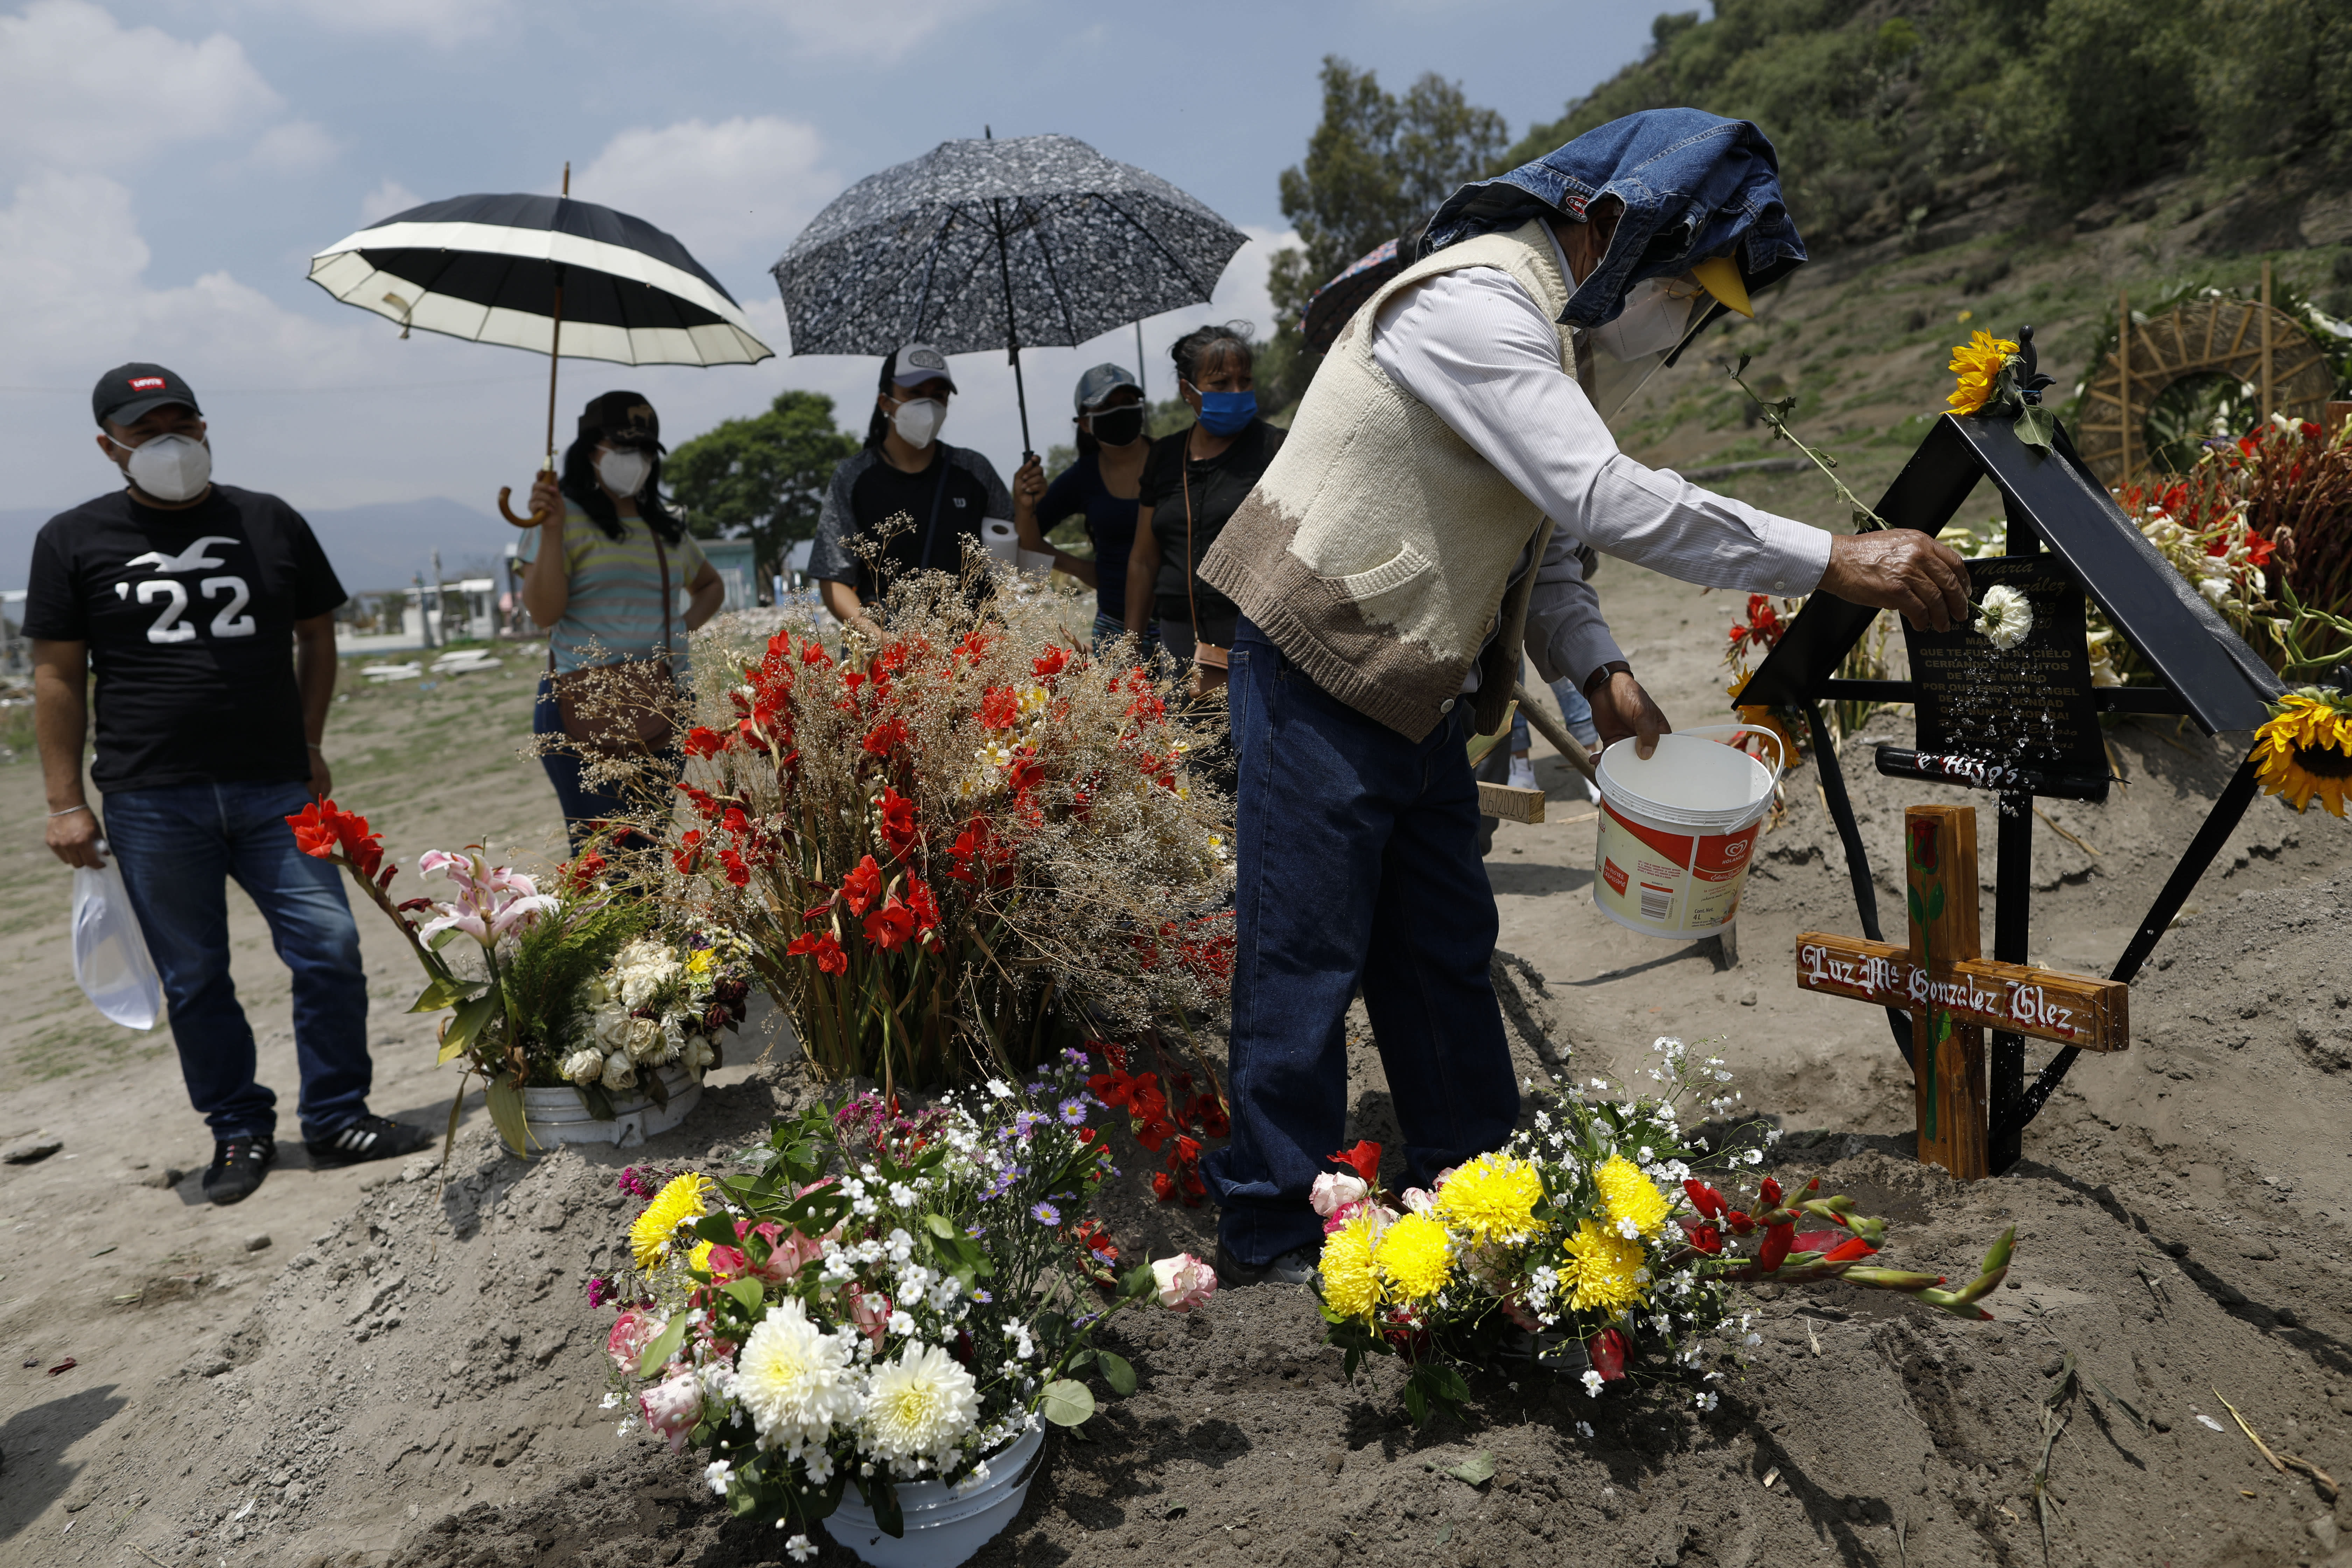 David Gonzalez uses a flower to sprinkle holy water onto the grave of his wife, Luz Maria Gonzalez, as they mark the 9th day since her burial in the Municipal Cemetery of Valle de Chalco on the outskirts of Mexico City, Saturday, July 4, 2020. Gonzalez, 56, who had long suffered from asthma, diabetes, and hypertension, died two days after her 29-year-old son, who was hospitalized for breathing problems and a cough before dying of complications said to be related to pneumonia and undiagnosed diabetes. (AP Photo/Rebecca Blackwell)